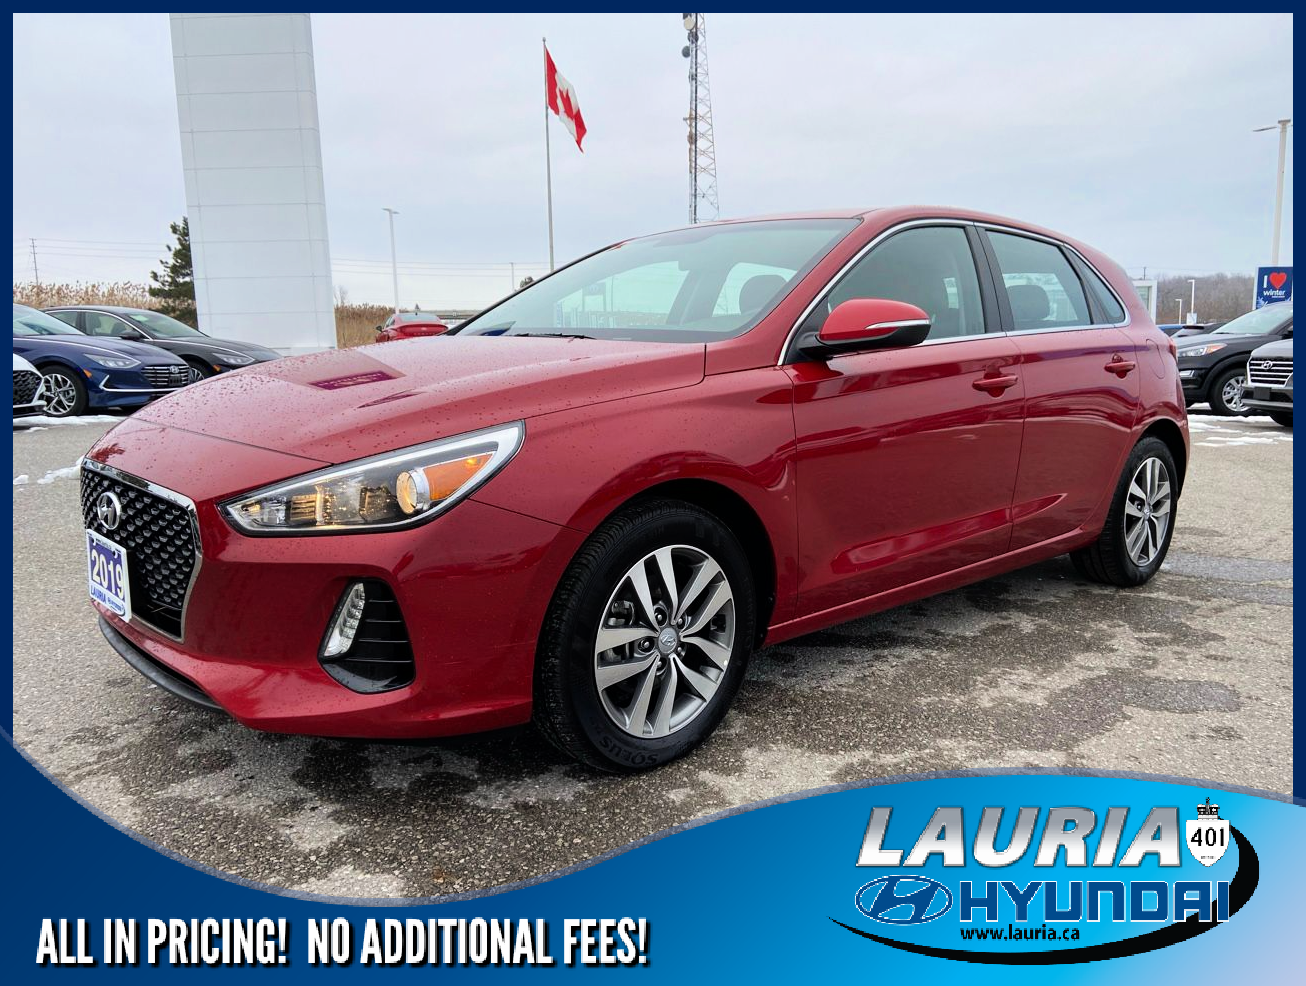 Certified Pre-Owned 2019 Hyundai Elantra GT Preferred Auto - Apple Carplay / Android Auto